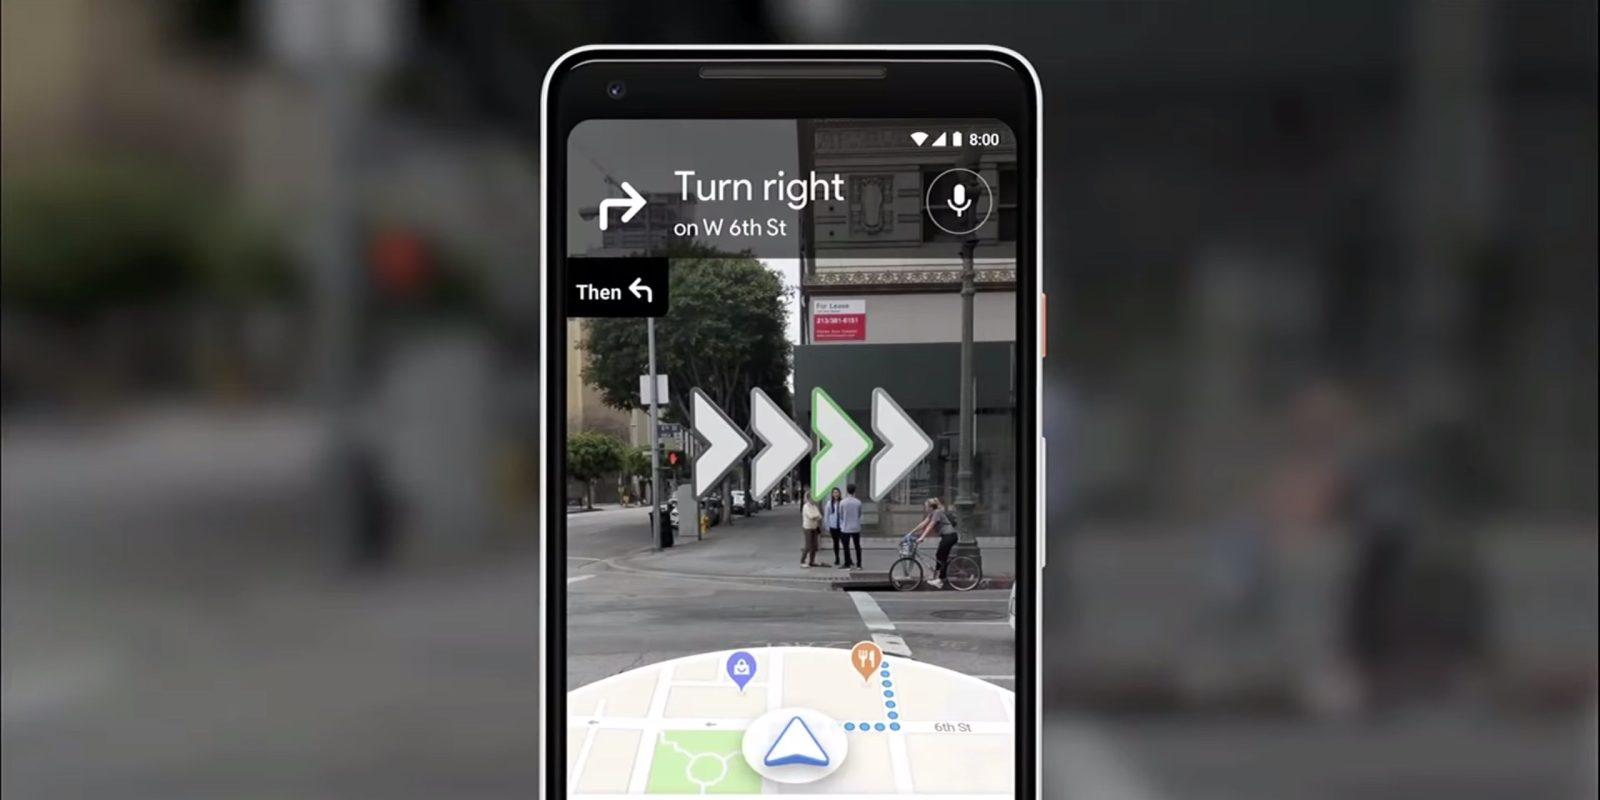 Google Maps AR navigation coming first to Local Guides as UI ... on bing maps beta, google navigation beta, apple ios beta, instagram beta, ios 6 beta, opera beta, google beta reminder, android beta, google earth beta, yandex maps beta, chrome beta,